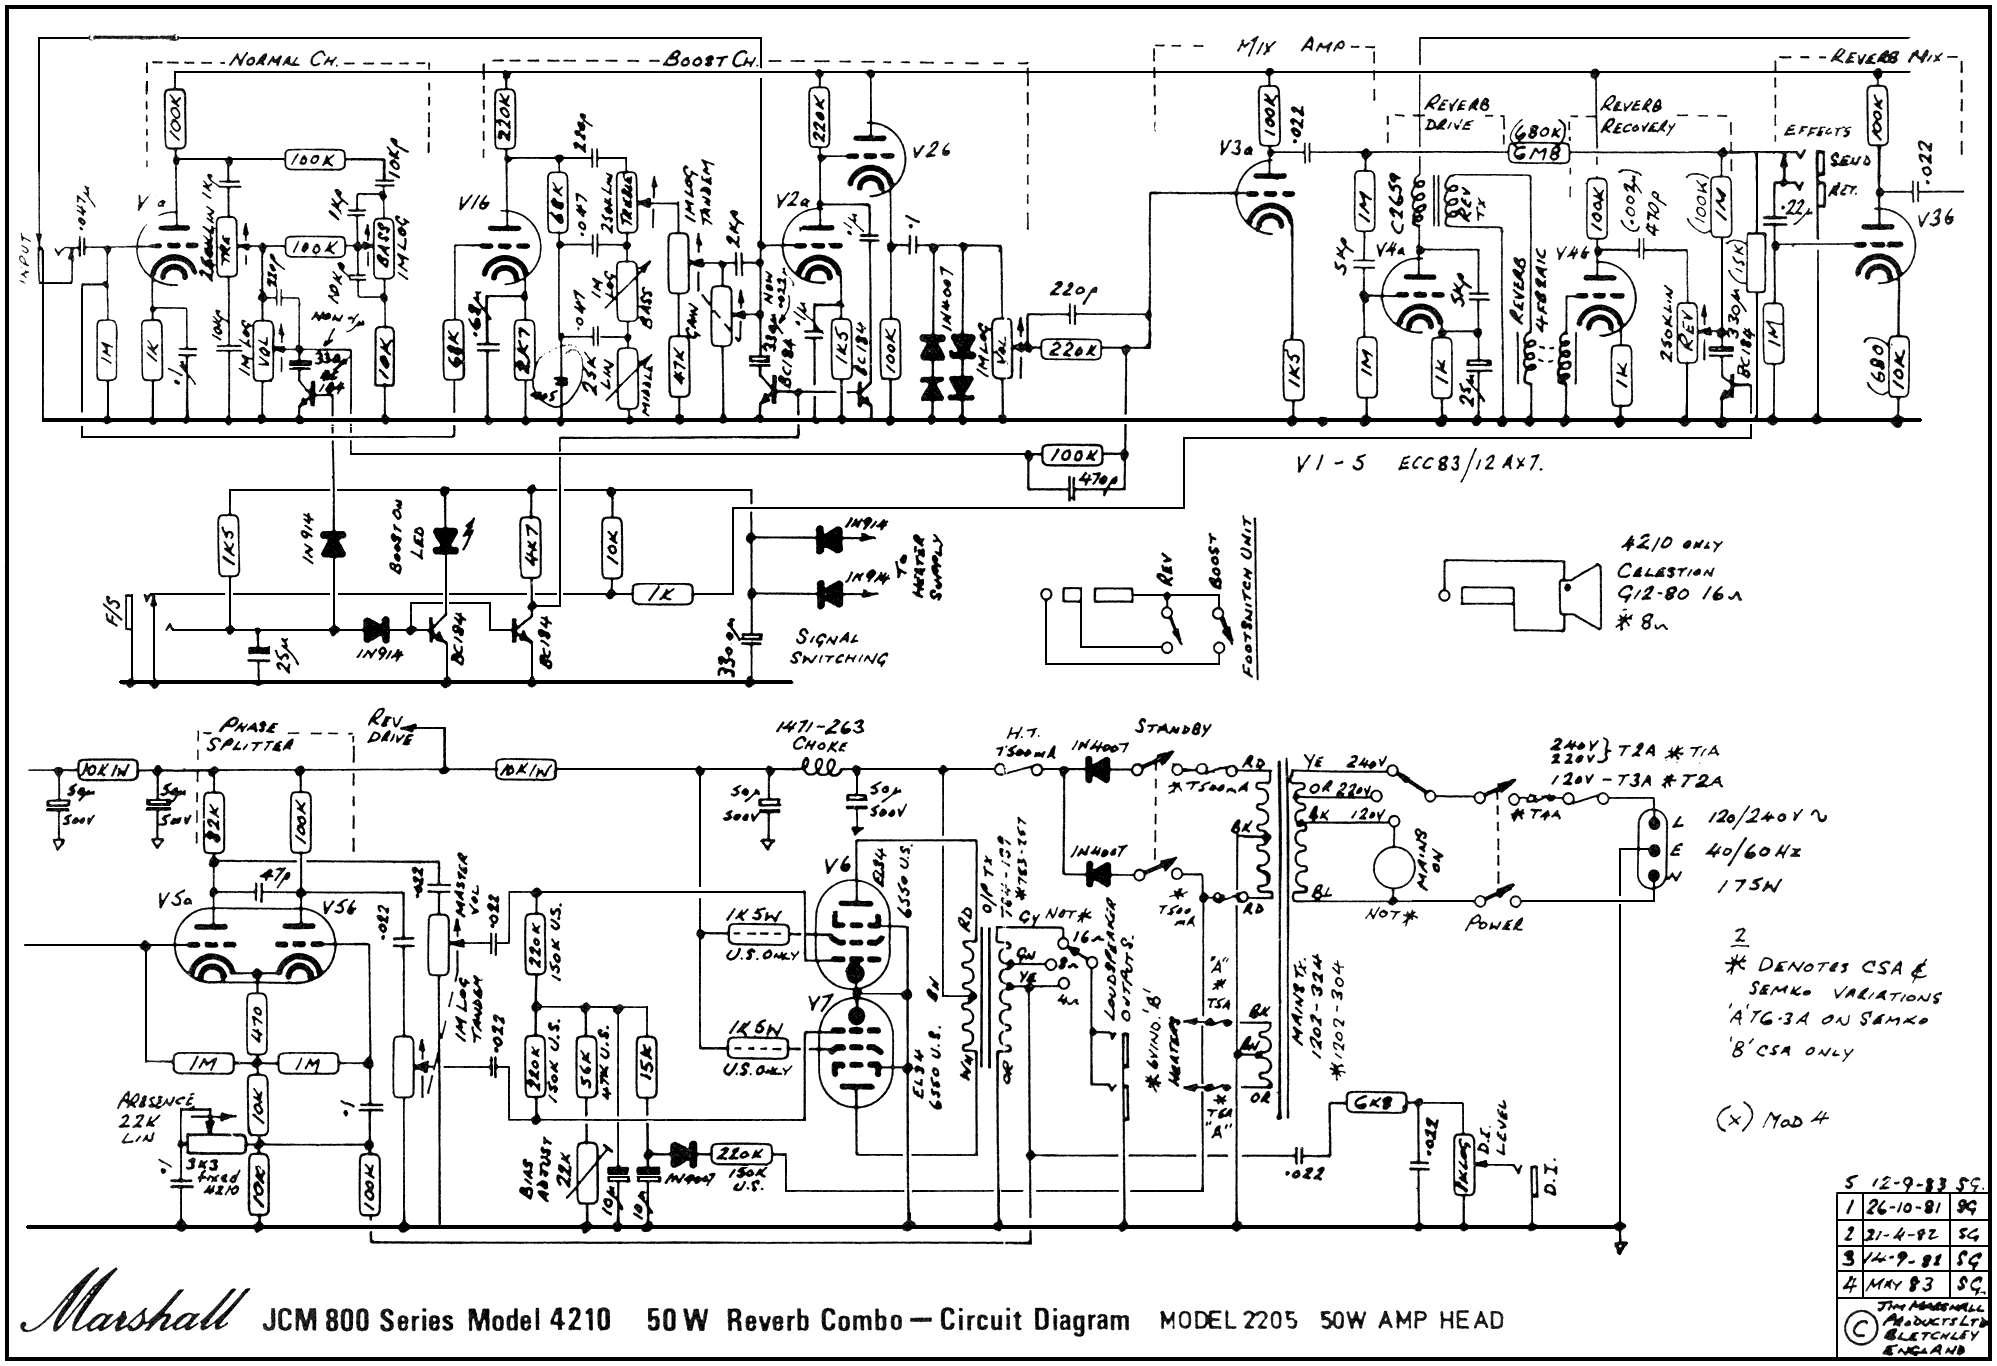 Guitar Amplifier Schematics - Guitar Nucleus on fender bassman schematic, marshall jtm 45 schematic, fender twin schematic, fender 5f6a schematic, fender champ schematic, bugera schematic, rlp 100 pro 100 schematic, mackie preamp schematic, vibro-king schematic, fender deluxe schematic, epiphone valve junior schematic, amplifier schematic, hiwatt schematic, marshall super bass schematic, fender vibroverb schematic, fender super reverb schematic,